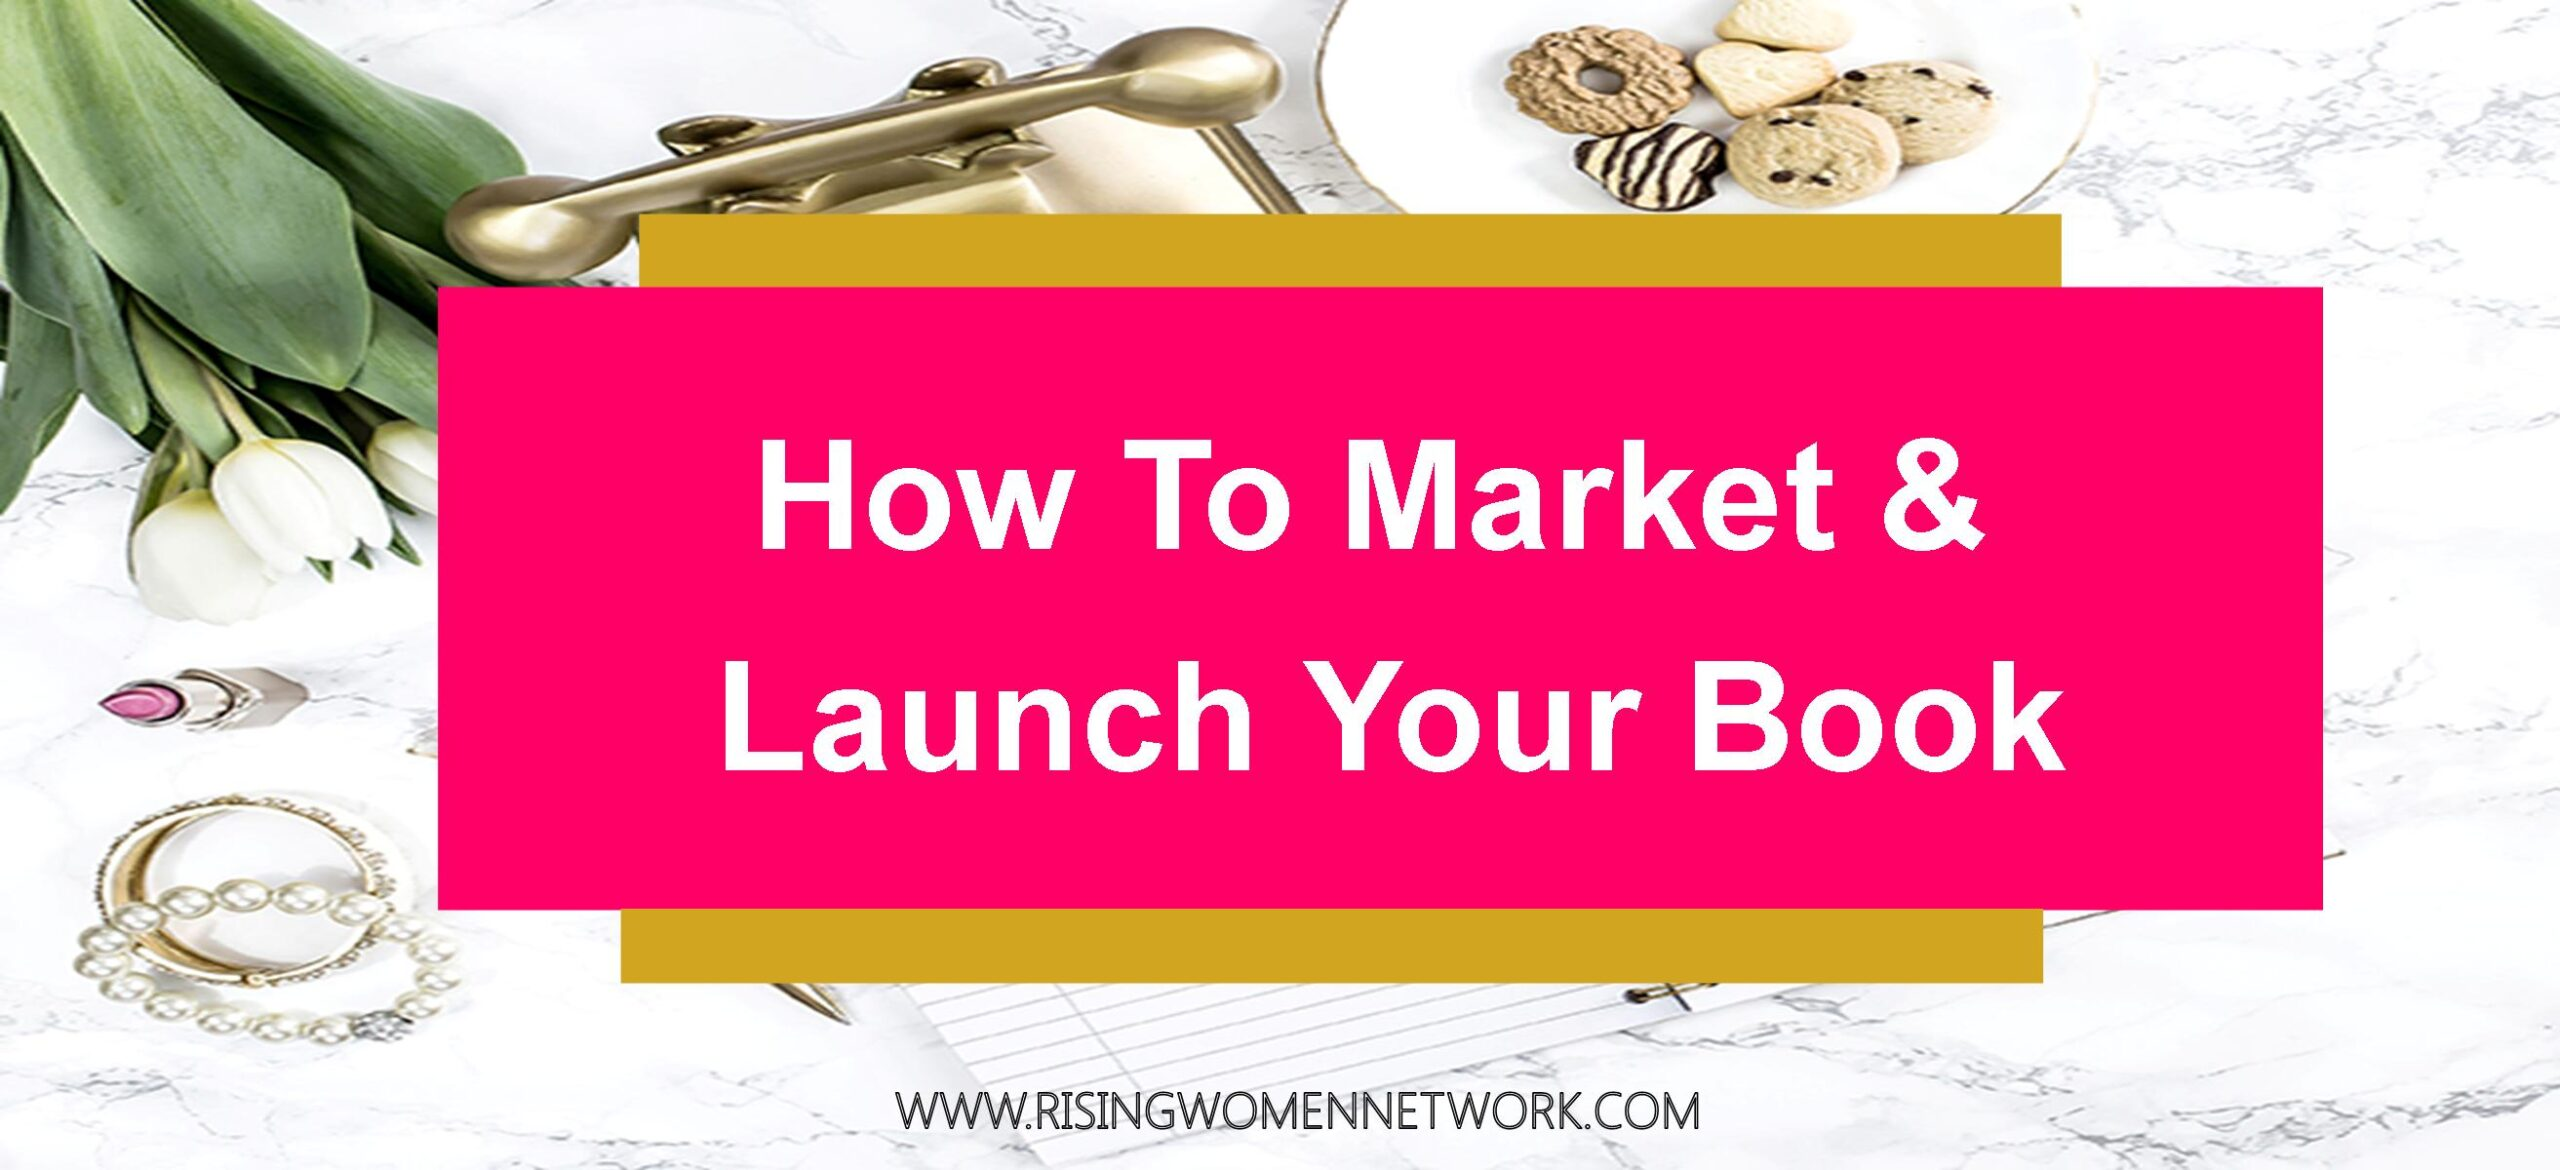 How To Market and Launch Your Book